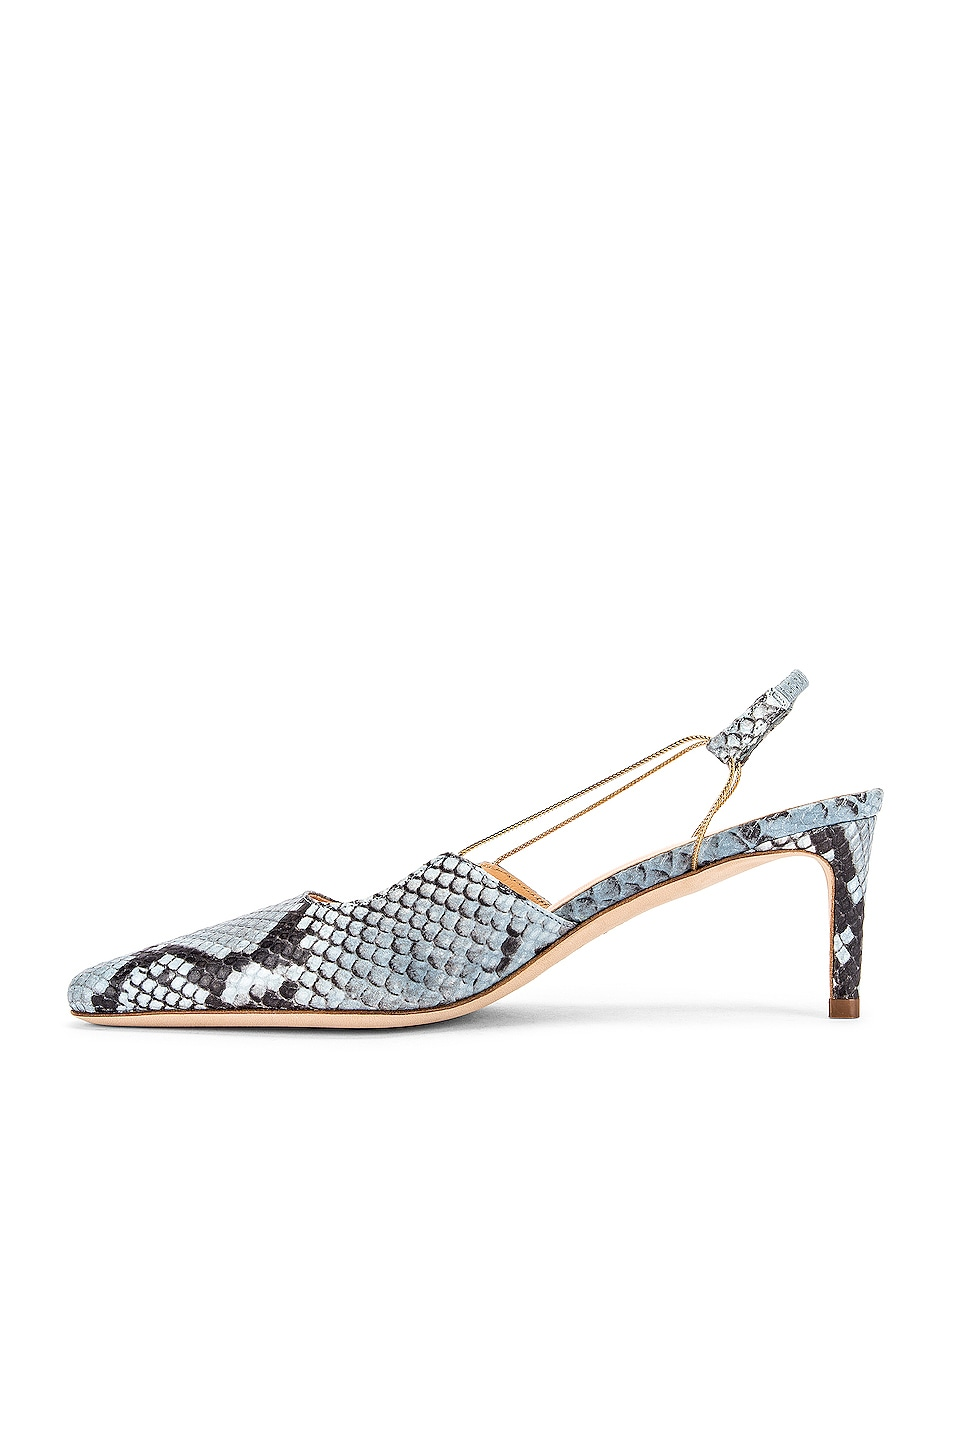 Image 5 of BY FAR Gabriella Snake Print Leather Pump in Light Blue